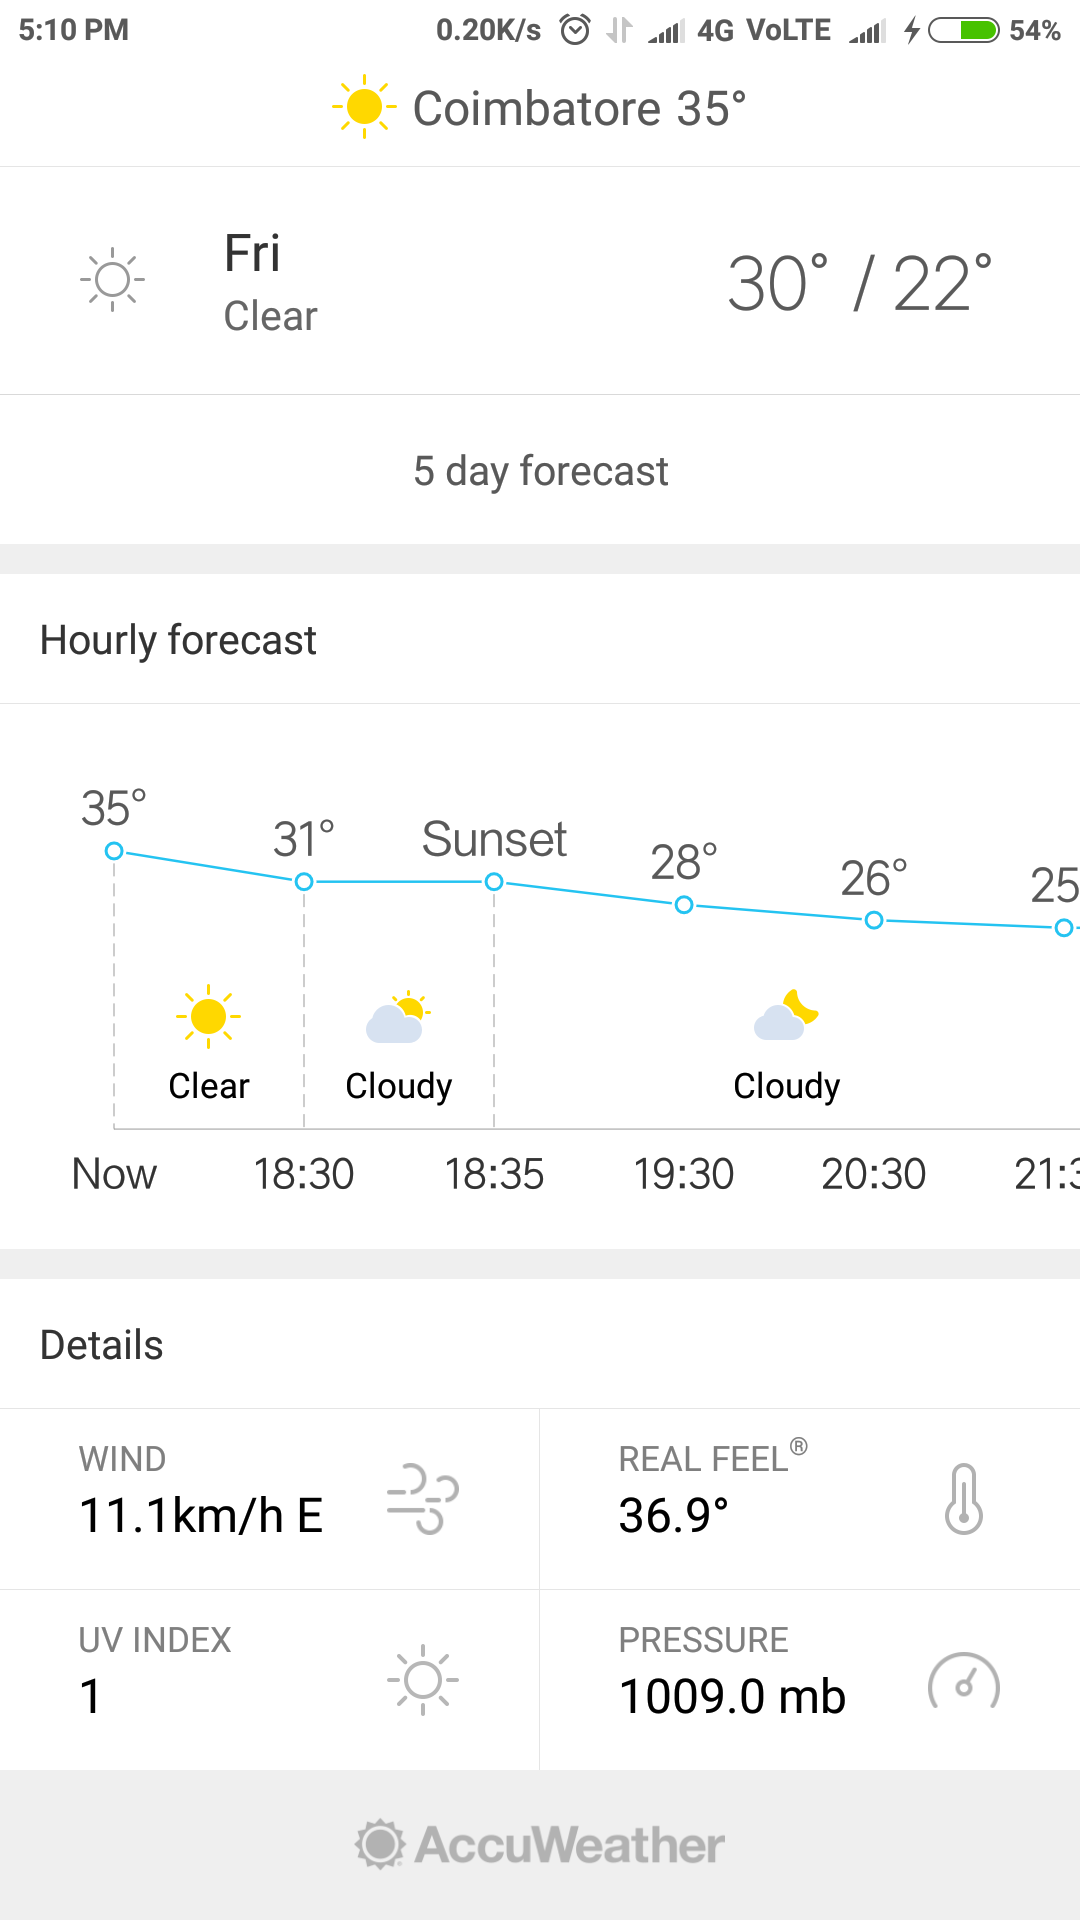 Screenshot_2017-05-03-17-10-24-937_com.miui.weather2.png